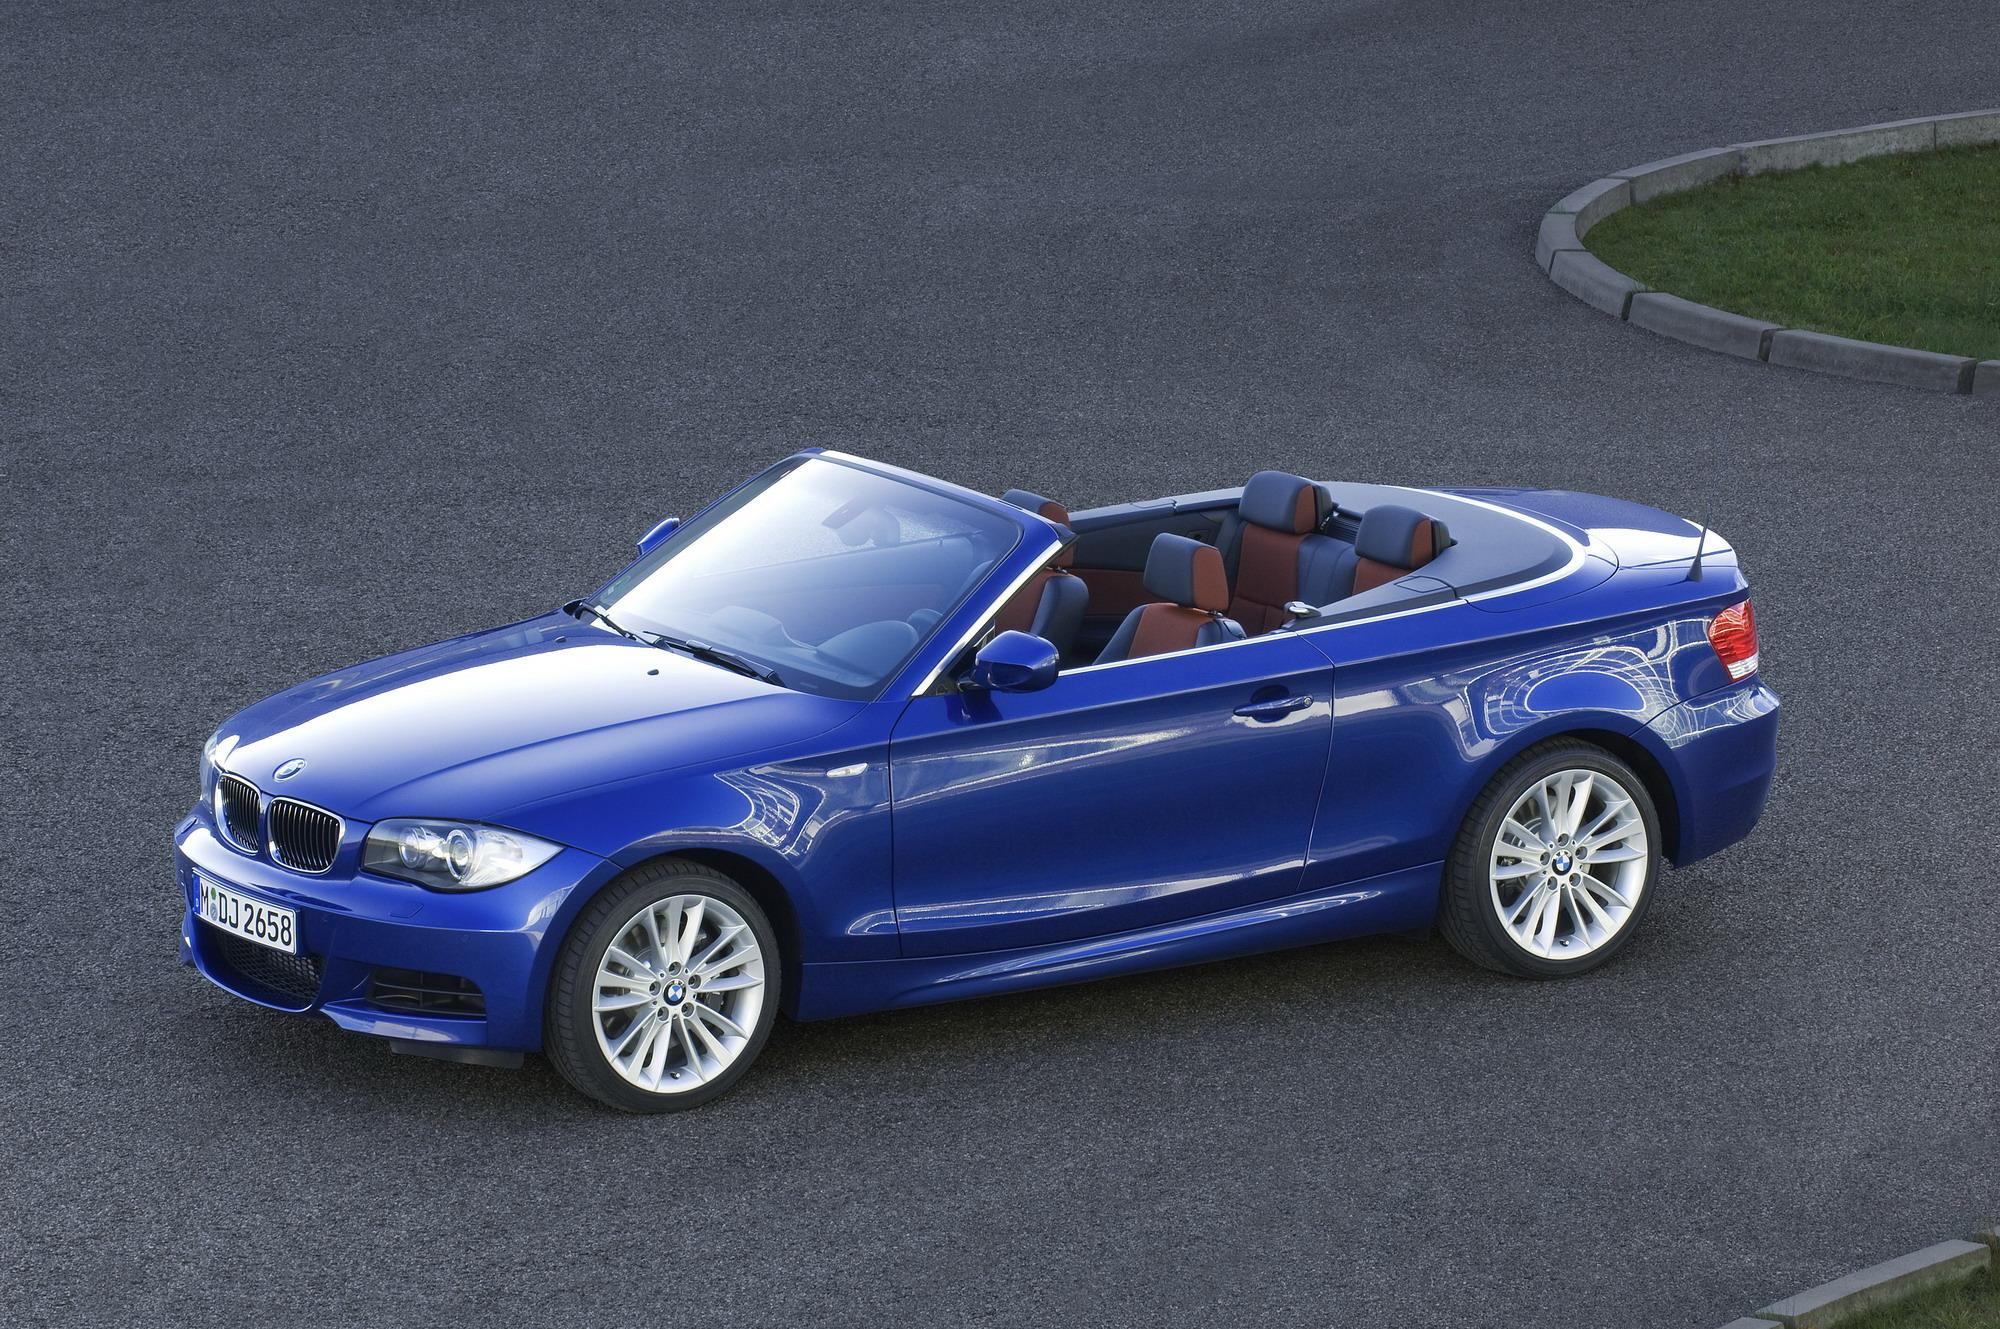 2010 BMW 135i Coupe And Convertible Review - Top Speed